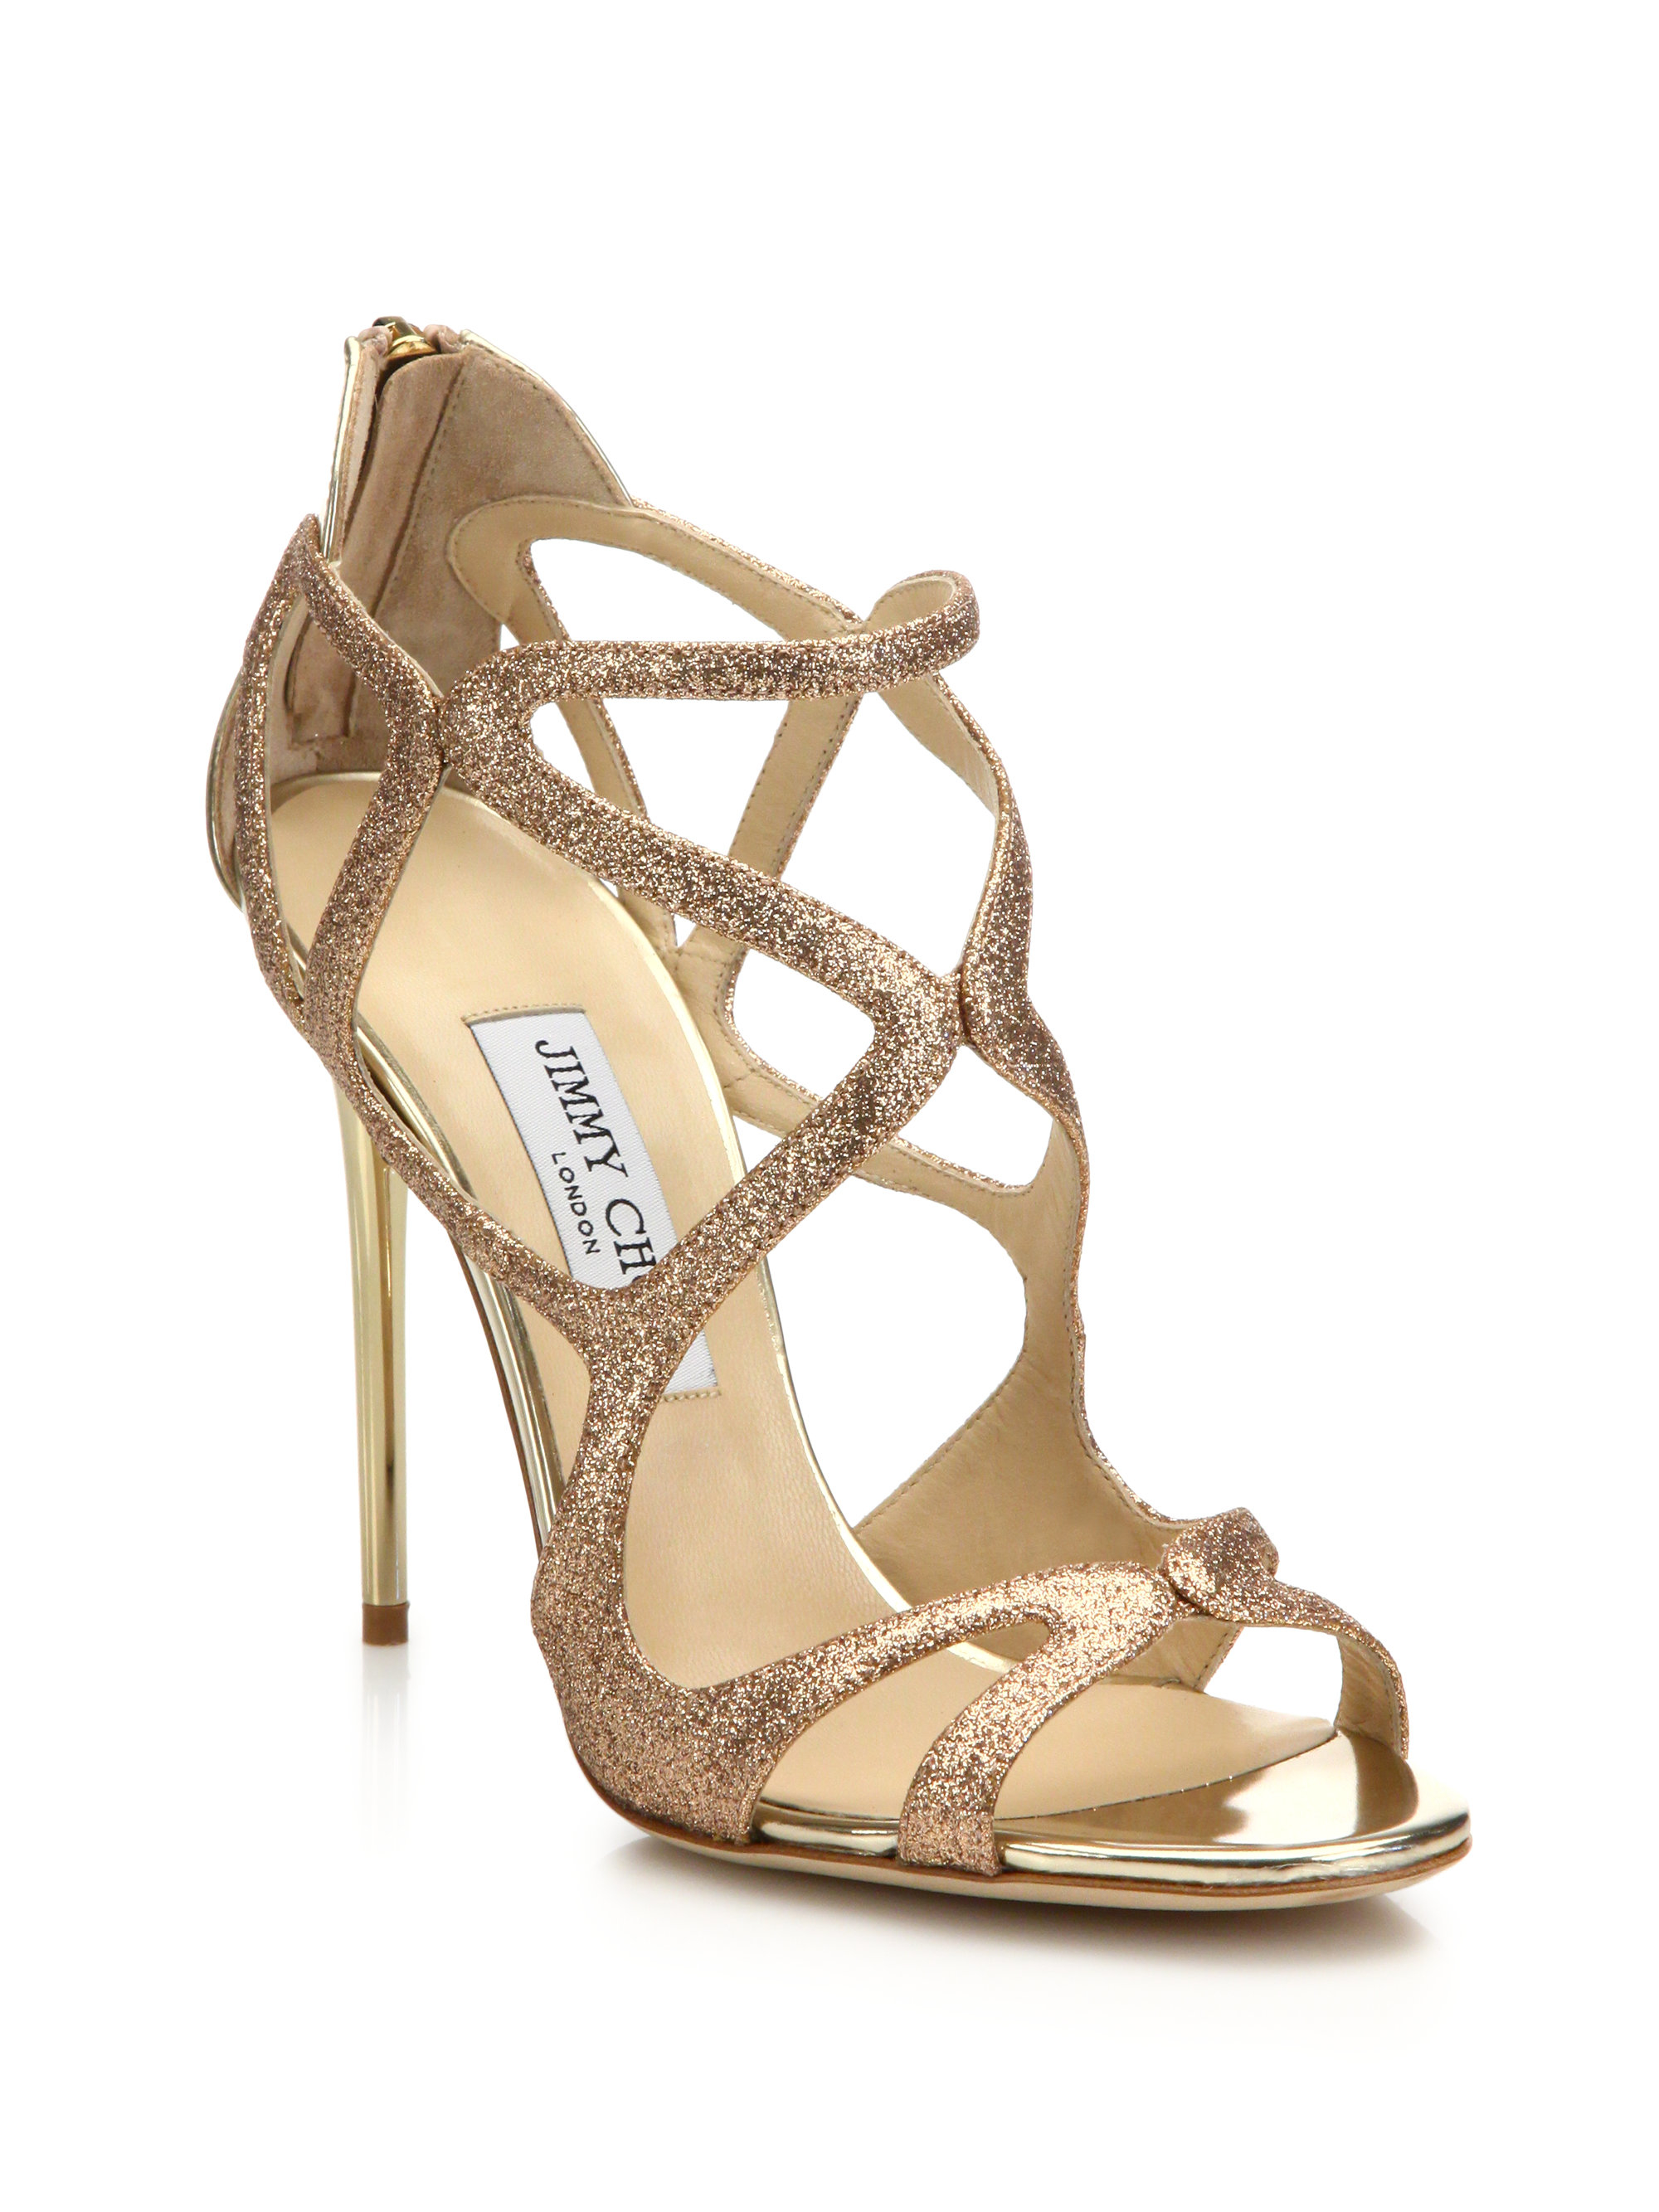 2f28e44d0af5 ... reduced lyst jimmy choo leslie glitter metallic leather sandals in  metallic 49fc1 36db4